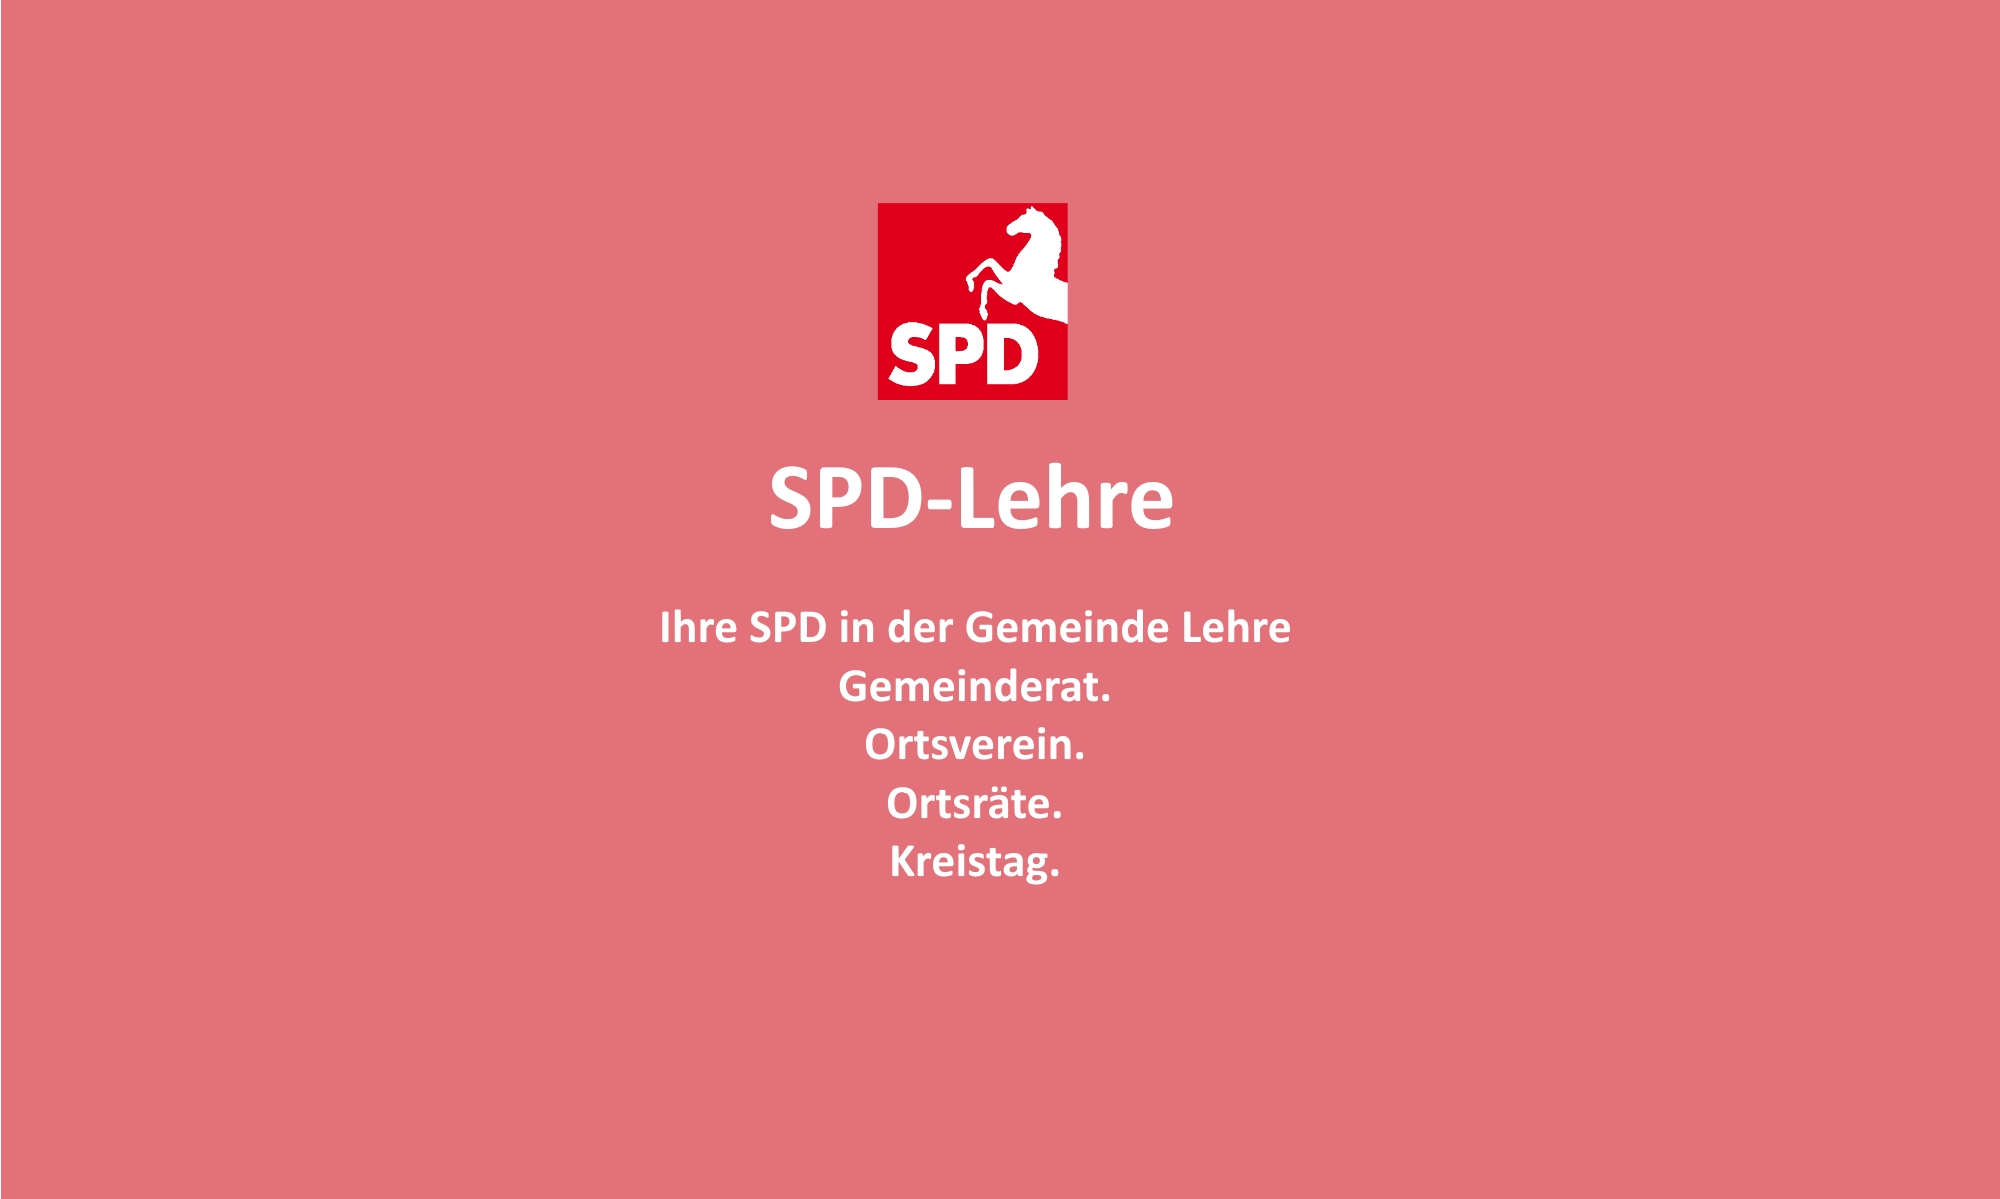 SPD Ortsverein Gemeinde Lehre